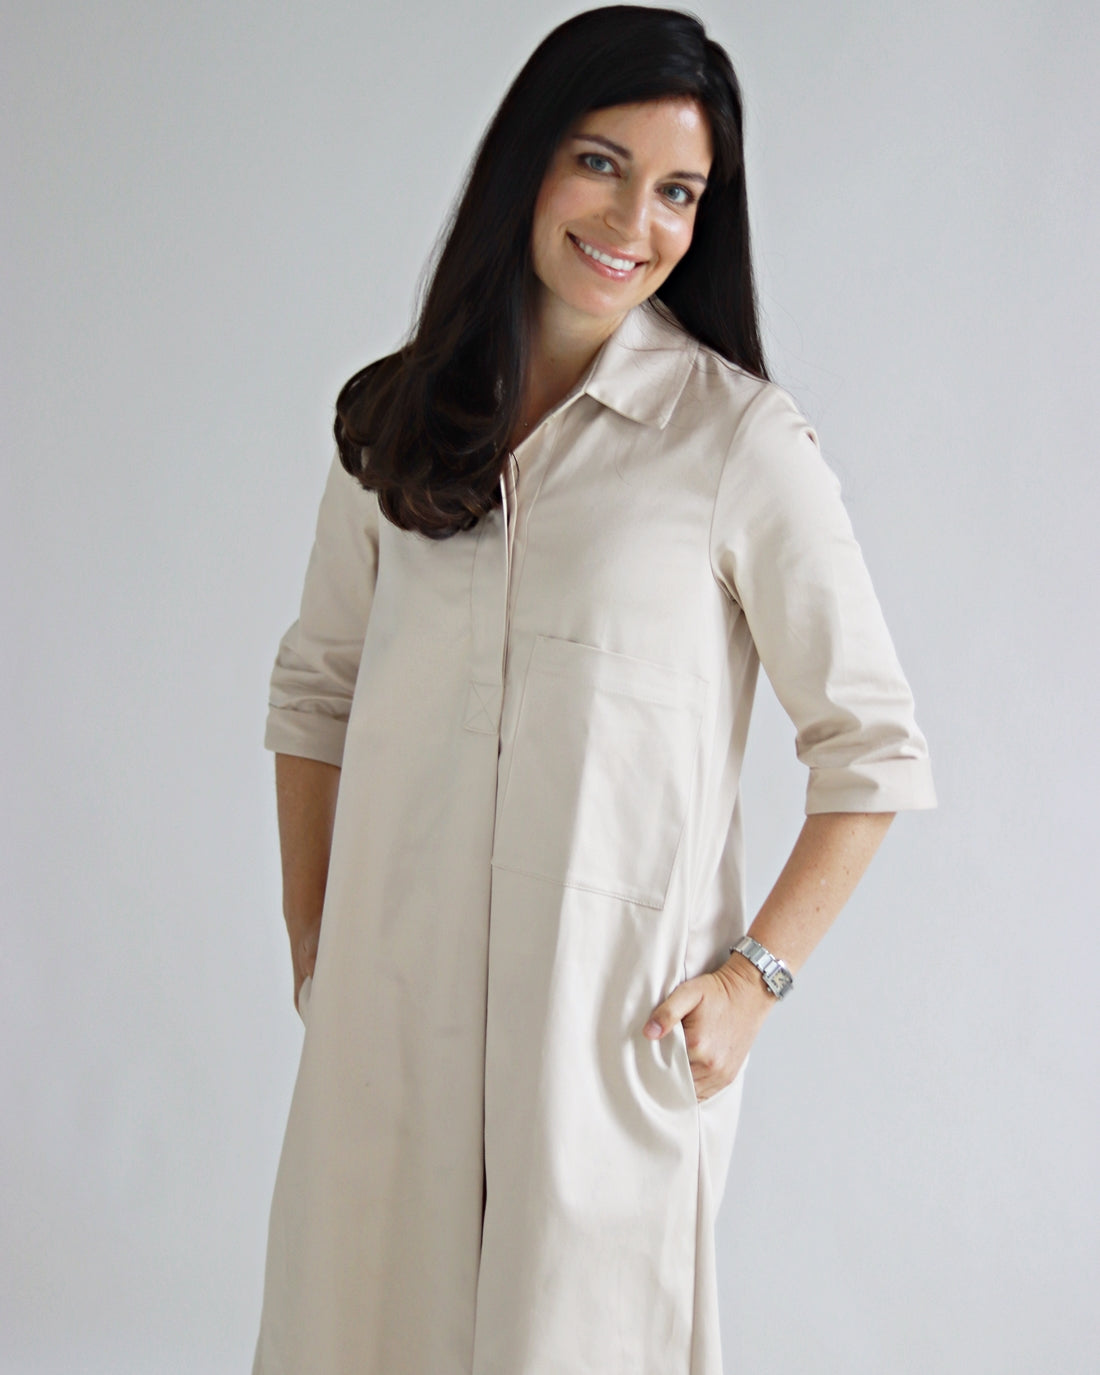 Ella Creme Dress - Sarah Feldman Cape Town